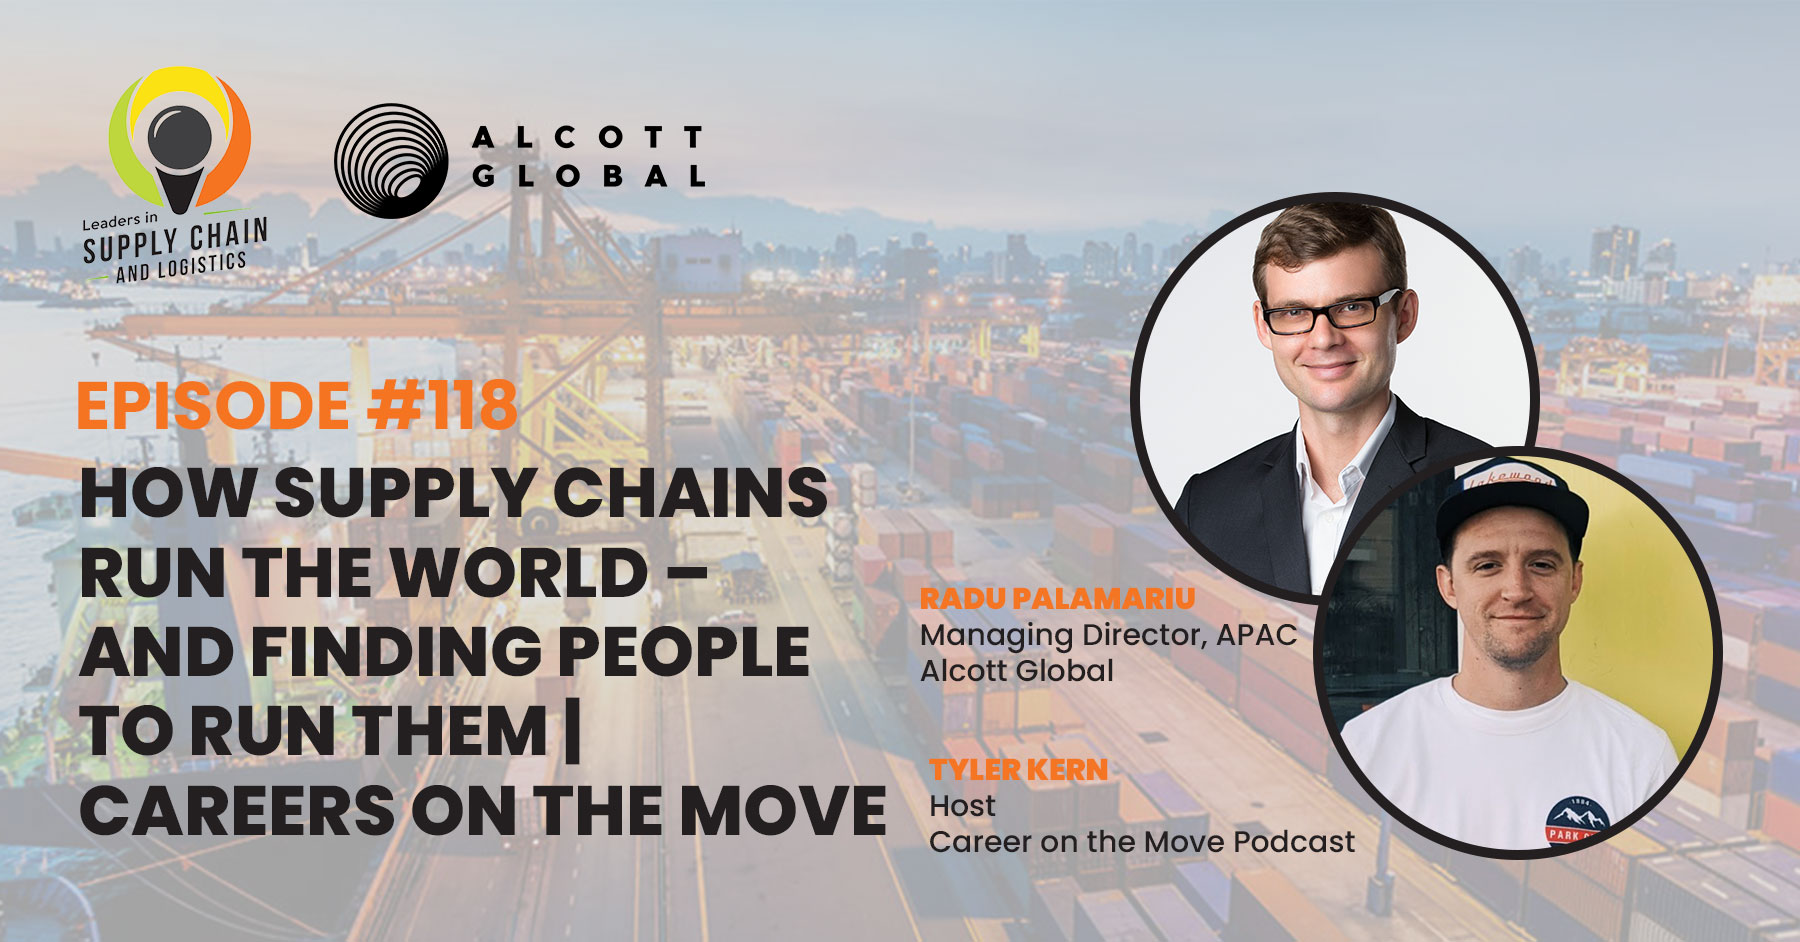 #118: How Supply Chains Run the World – and Finding People to Run Them | Careers on the Move Featured Image